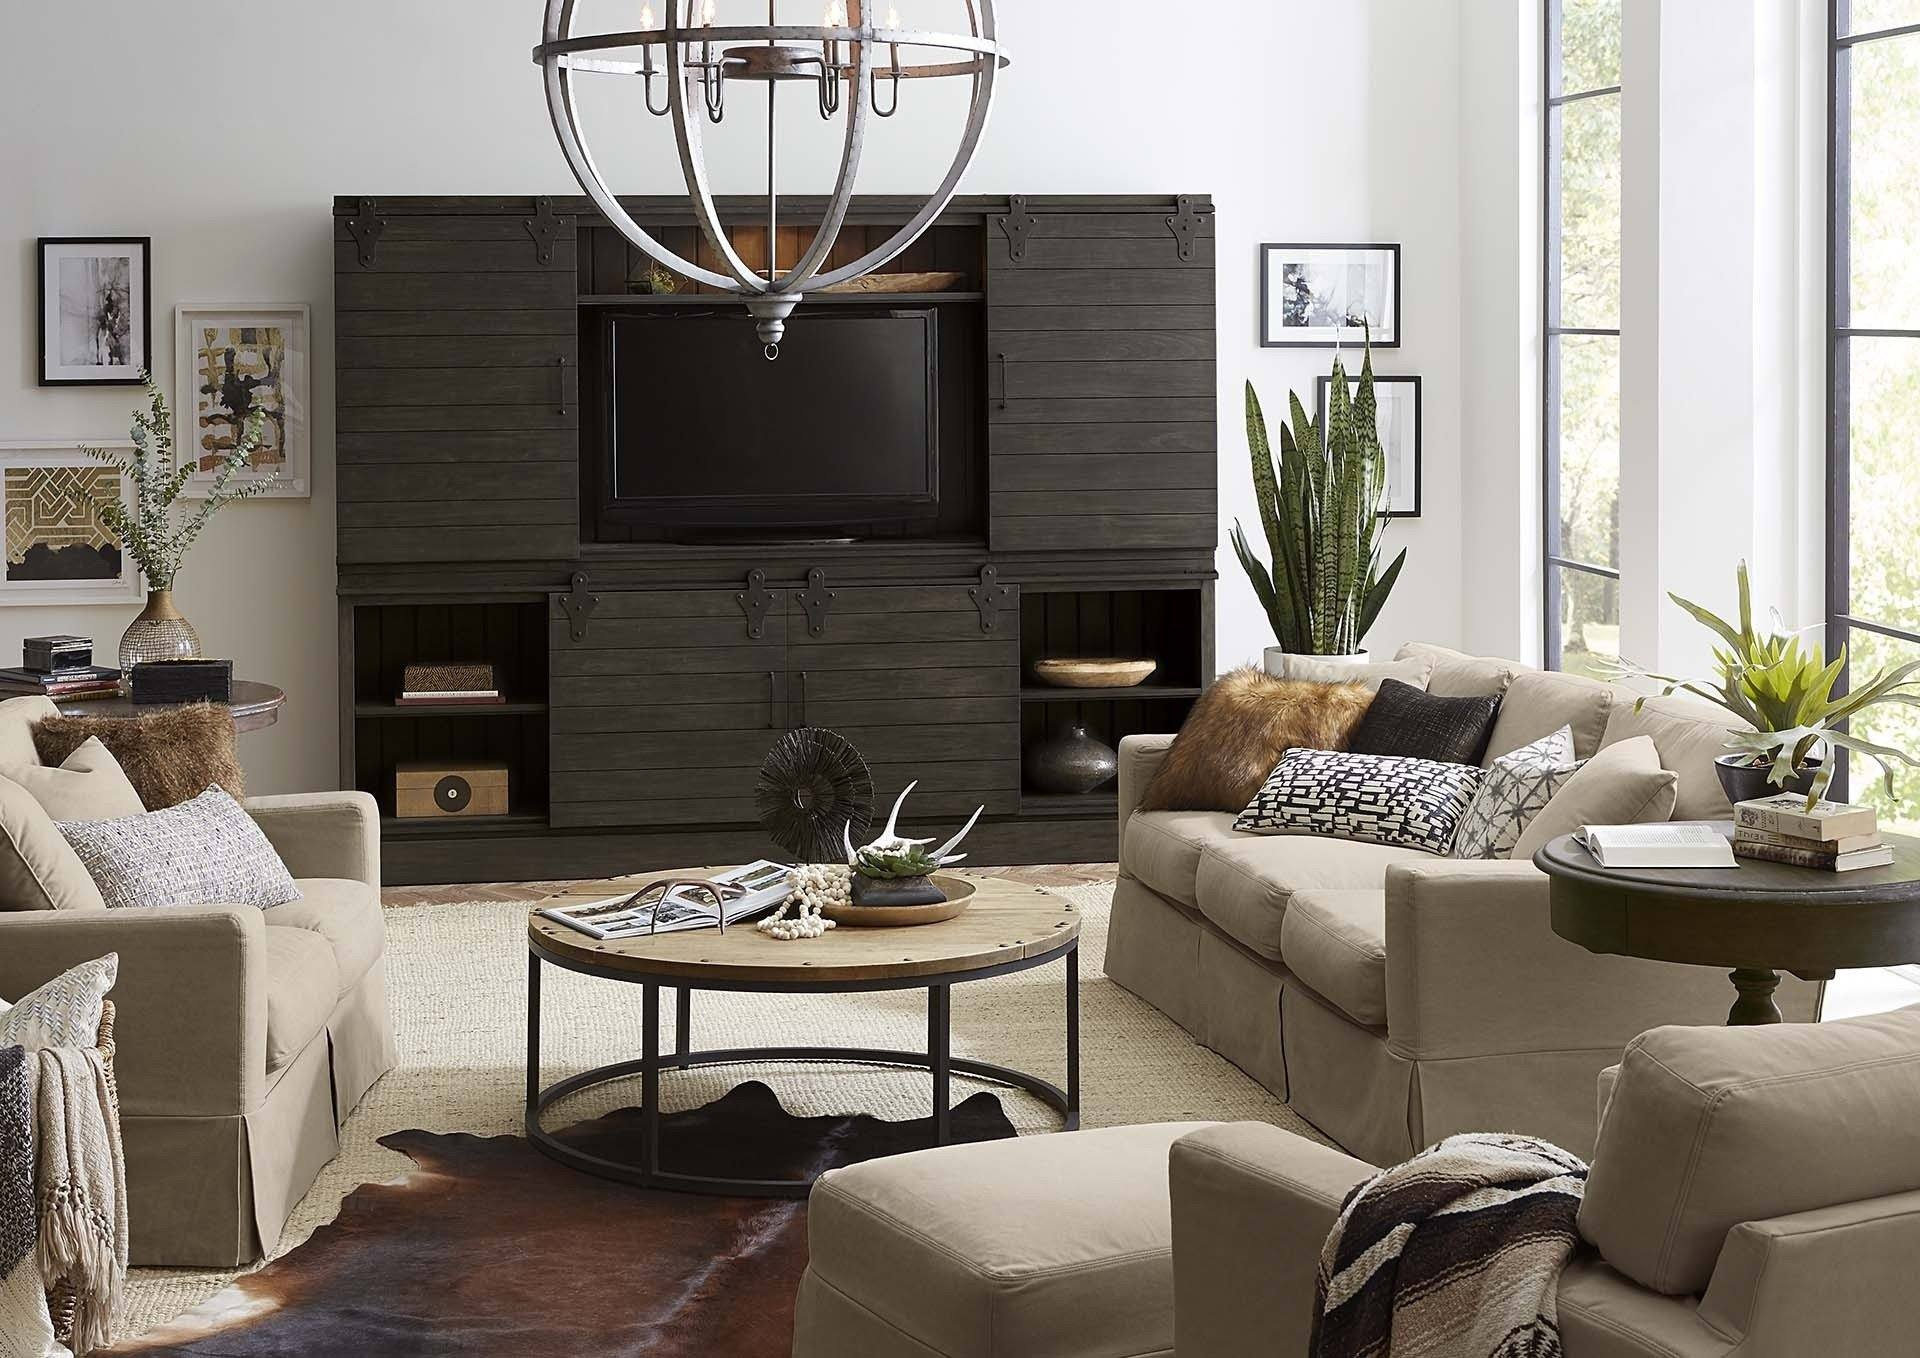 Sonoma 4 Door Sliding Cabinet - Showhome Furniture